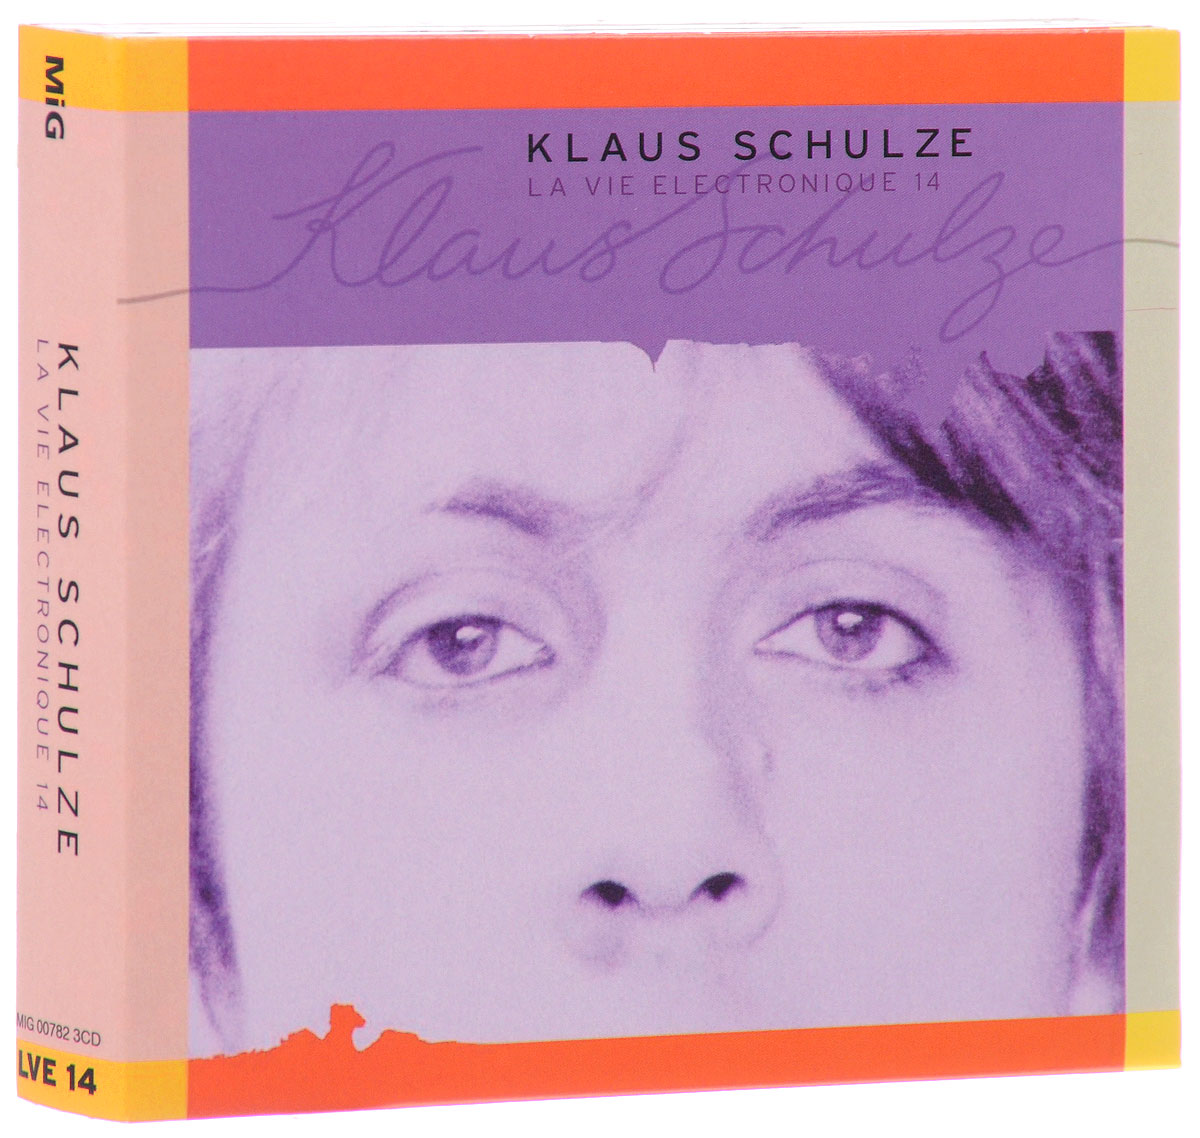 Клаус Шульце Klaus Schulze. La Vie Electronique 14 (3 CD) клаус шульце klaus schulze la vie electronique 11 3 cd